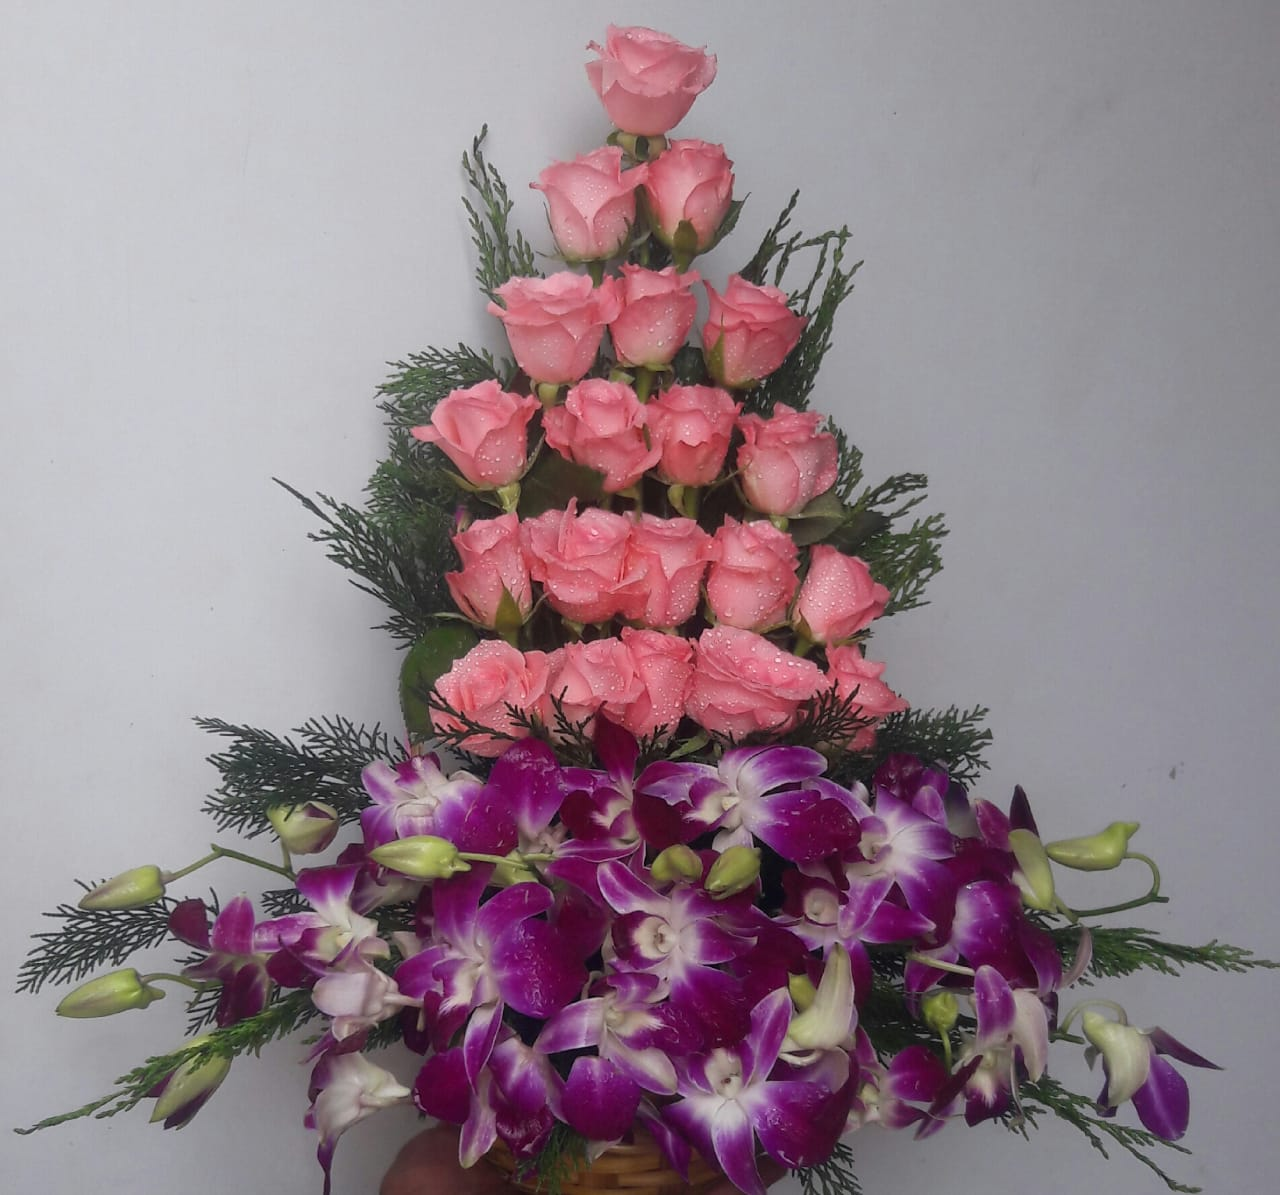 Cake Delivery Patel Nagar West DelhiBasket of Rose & Orchid